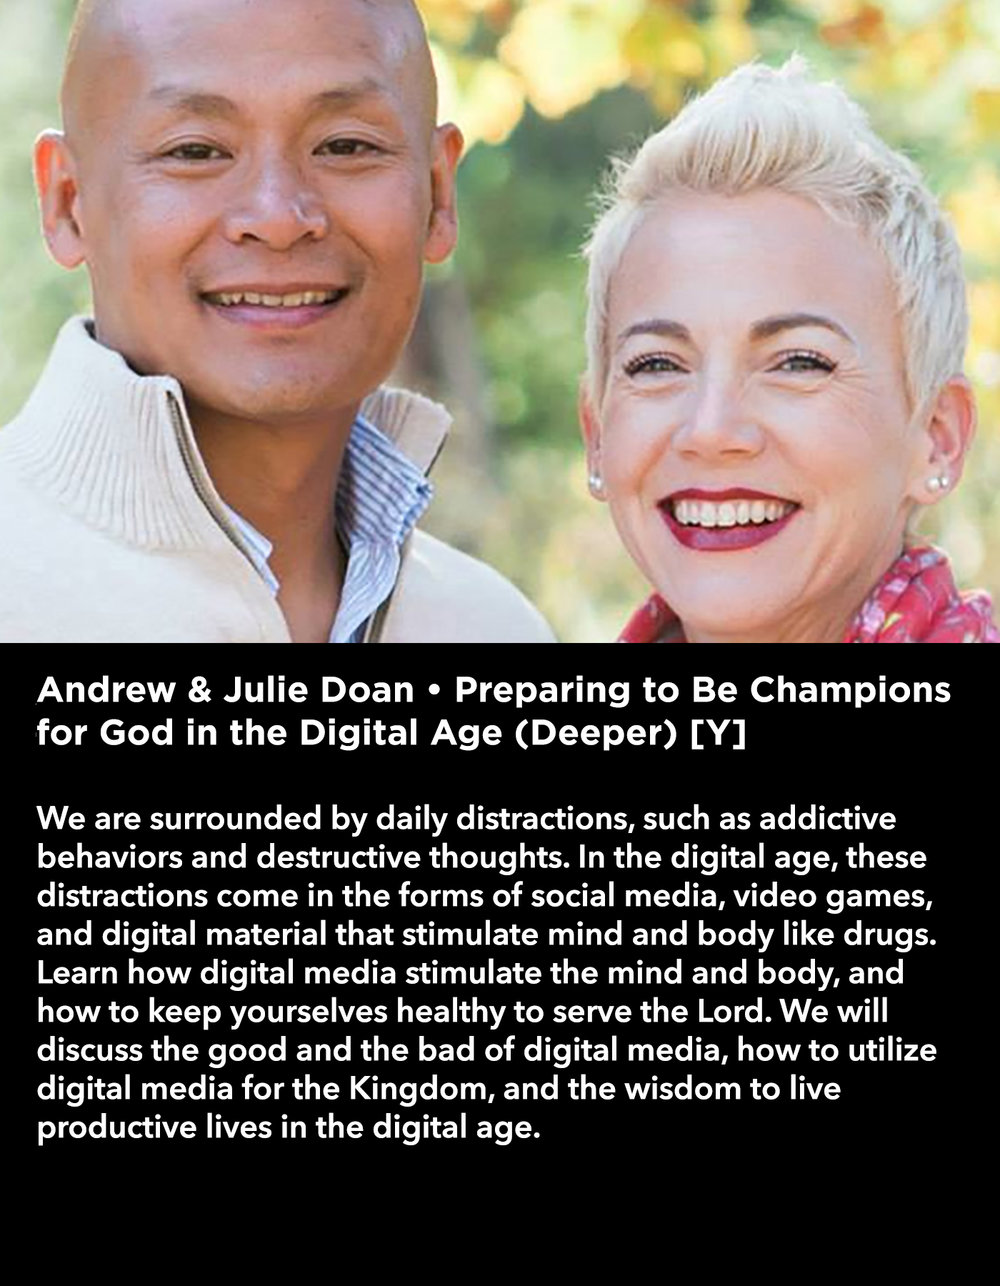 Andrew & Julie Doan • Preparing to Be Champions for God in the Digital Age (Deeper) [Y] • Saturday Morning, March 18 • 10:30 – 11:45 am